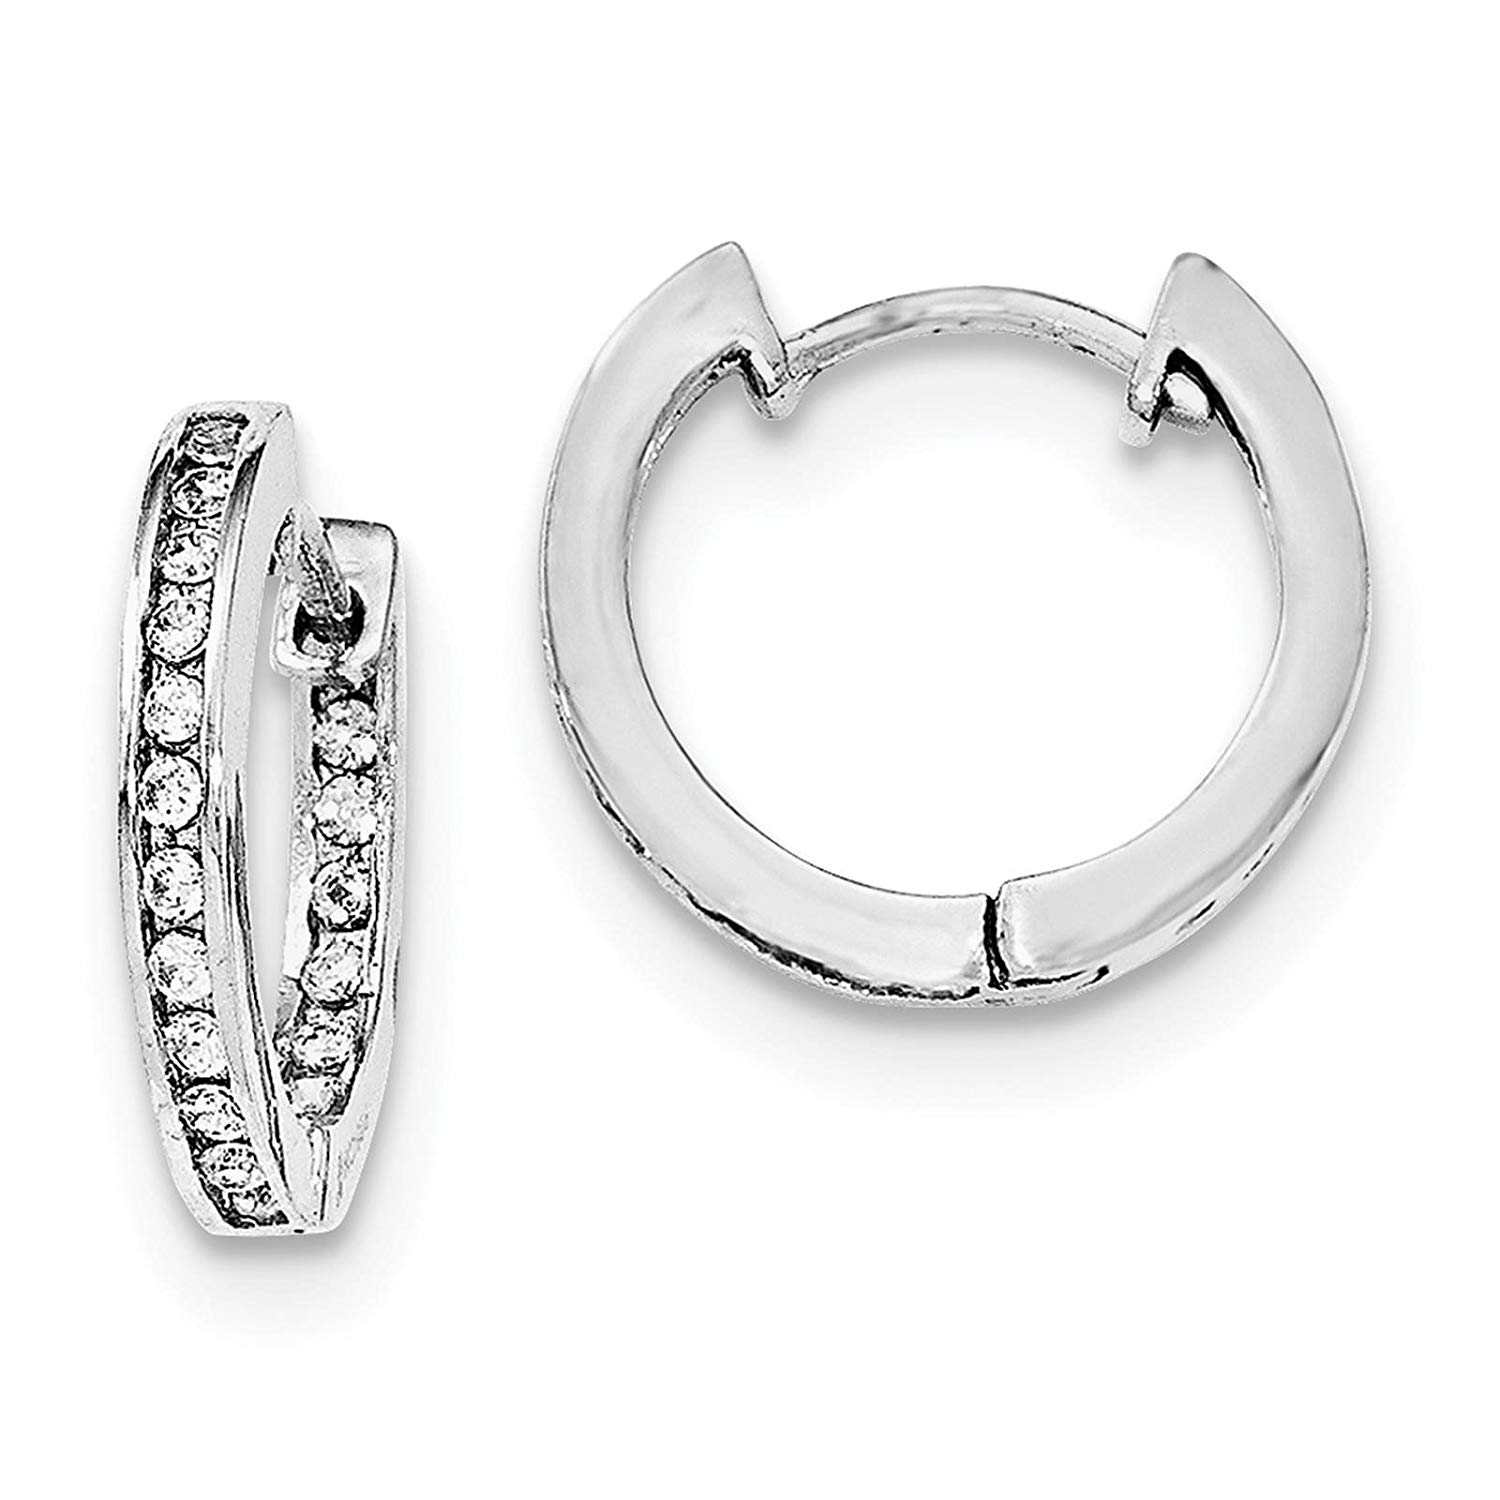 925 Sterling Silver Rhodium-plated CZ In /& Out Hoop Earrings 3mm x 30mm by 925 Sterling Shimmer